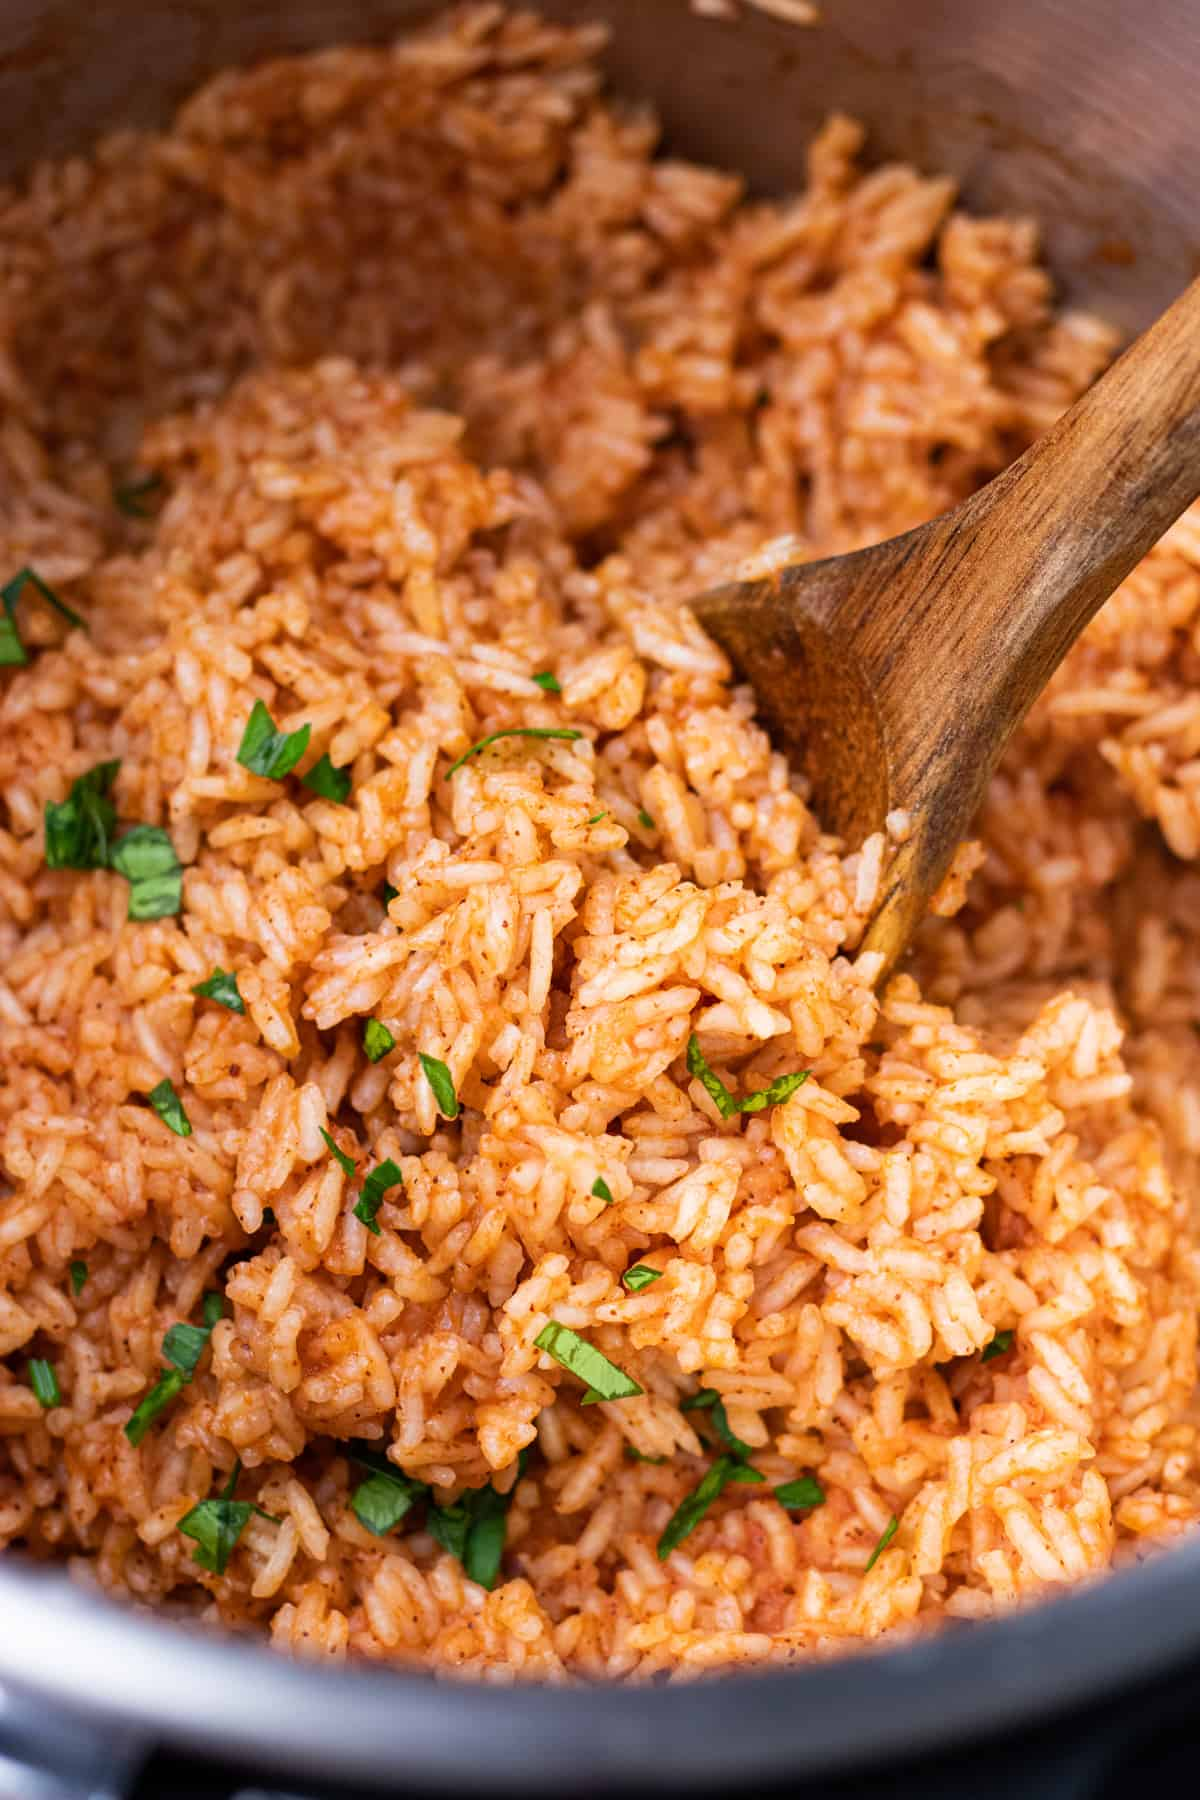 Mexican rice in instant pot, with a wooden spoon and chopped parsley.